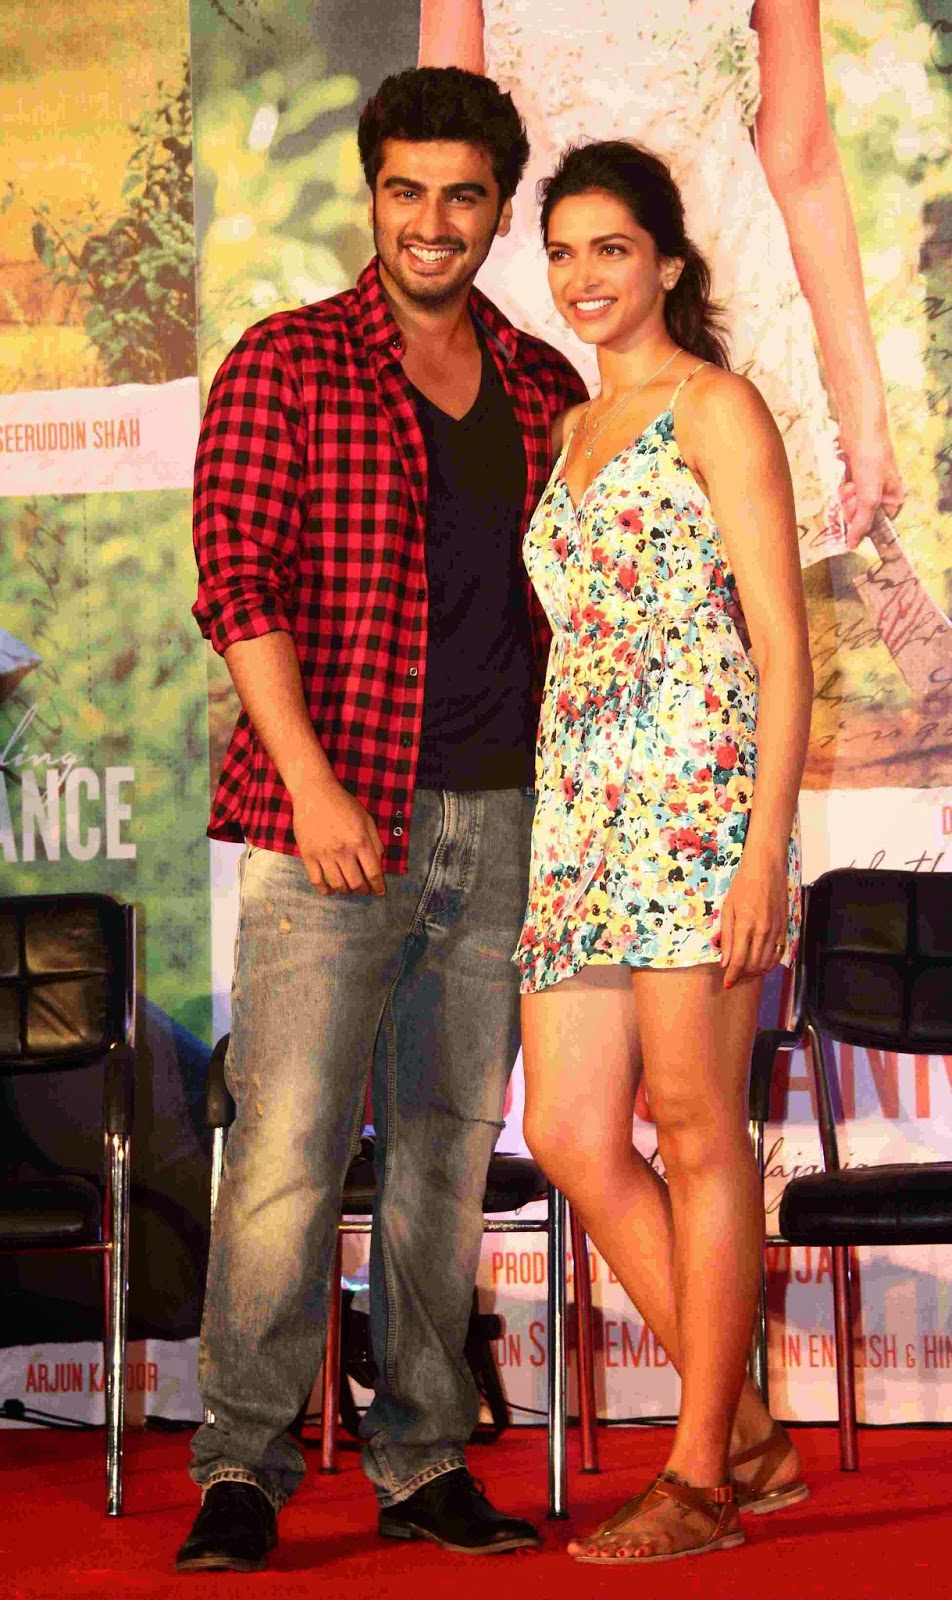 Arjun Kapoor & Deepika launch Fanny Re song from 'Finding Fanny' movie